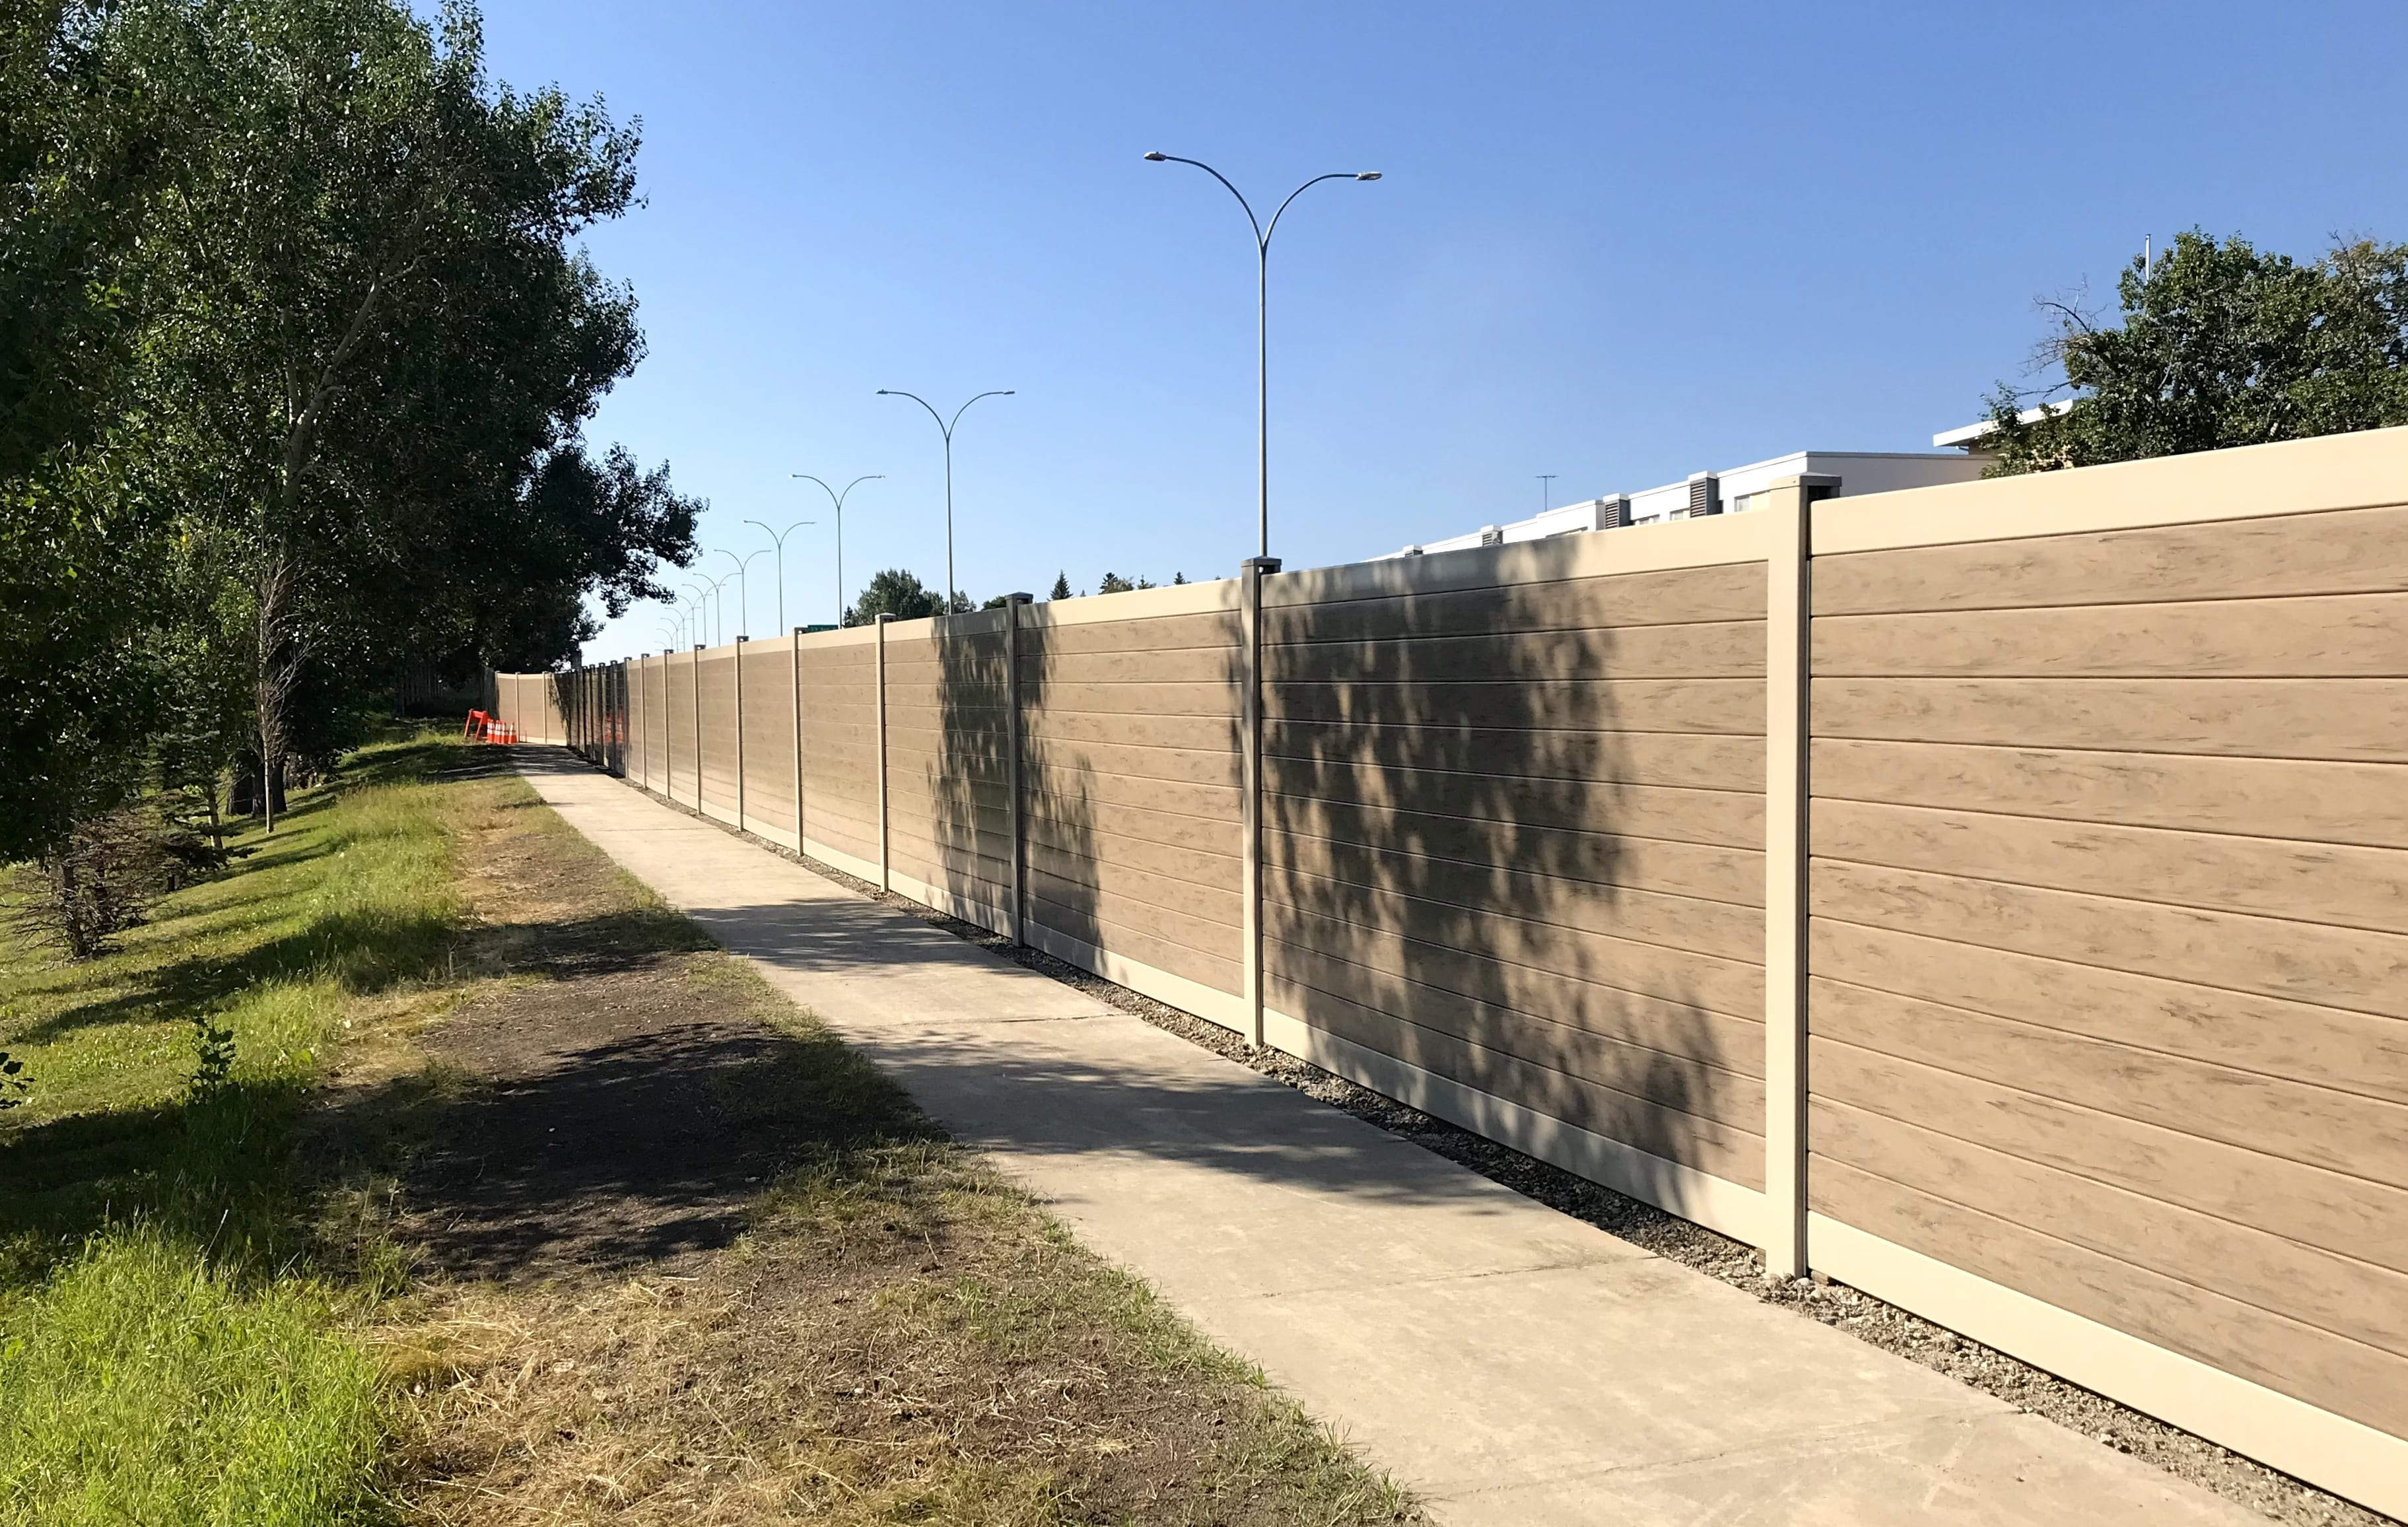 Closer sidewalk view of Calgary highway sound barrier wall